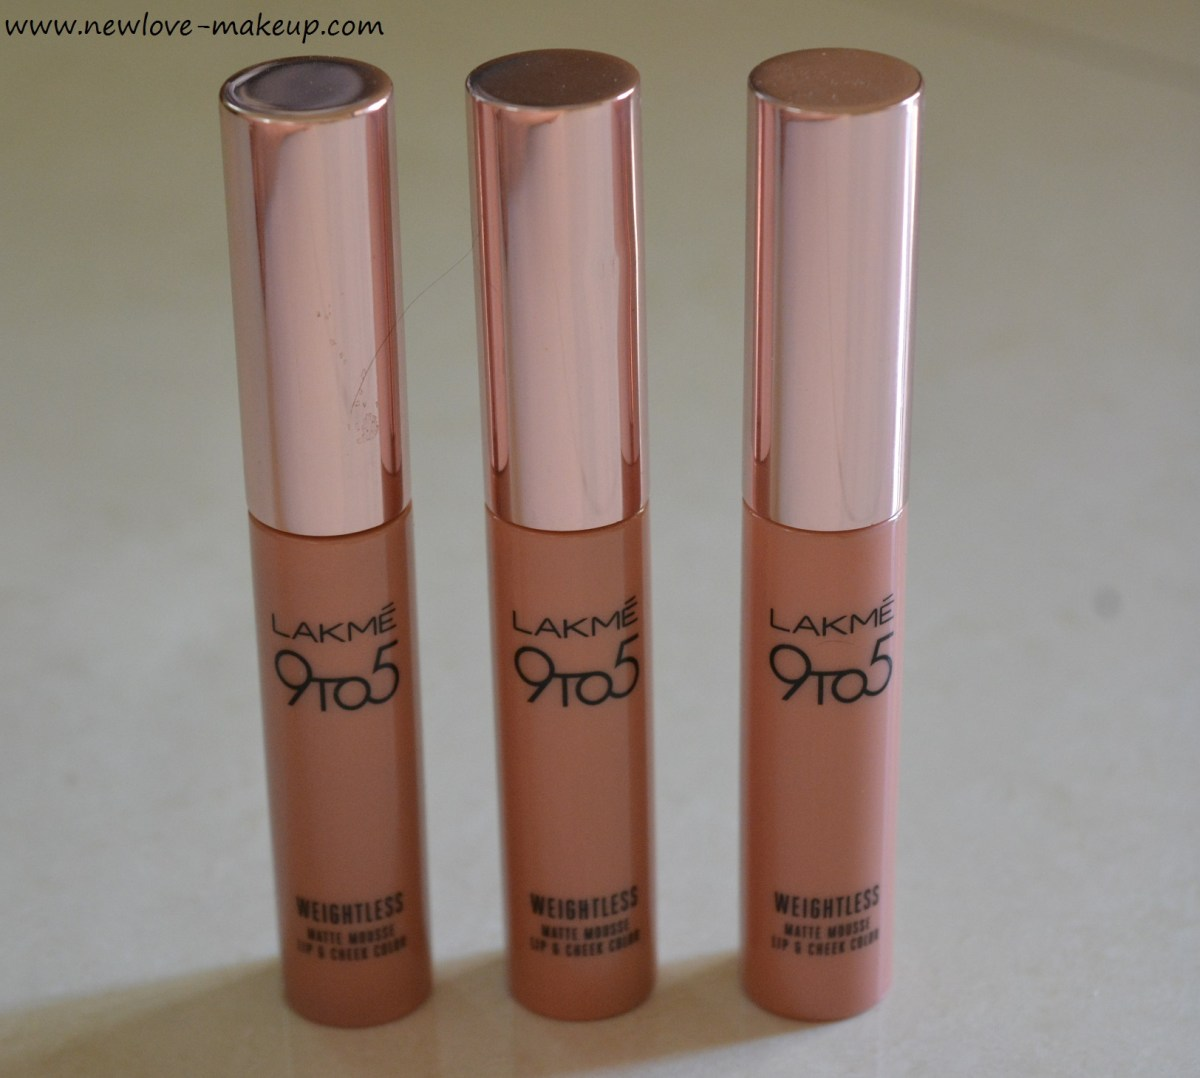 Lakme 9 to 5 Weightless Matte Mousse Lip & Cheek Color Review, Swatches